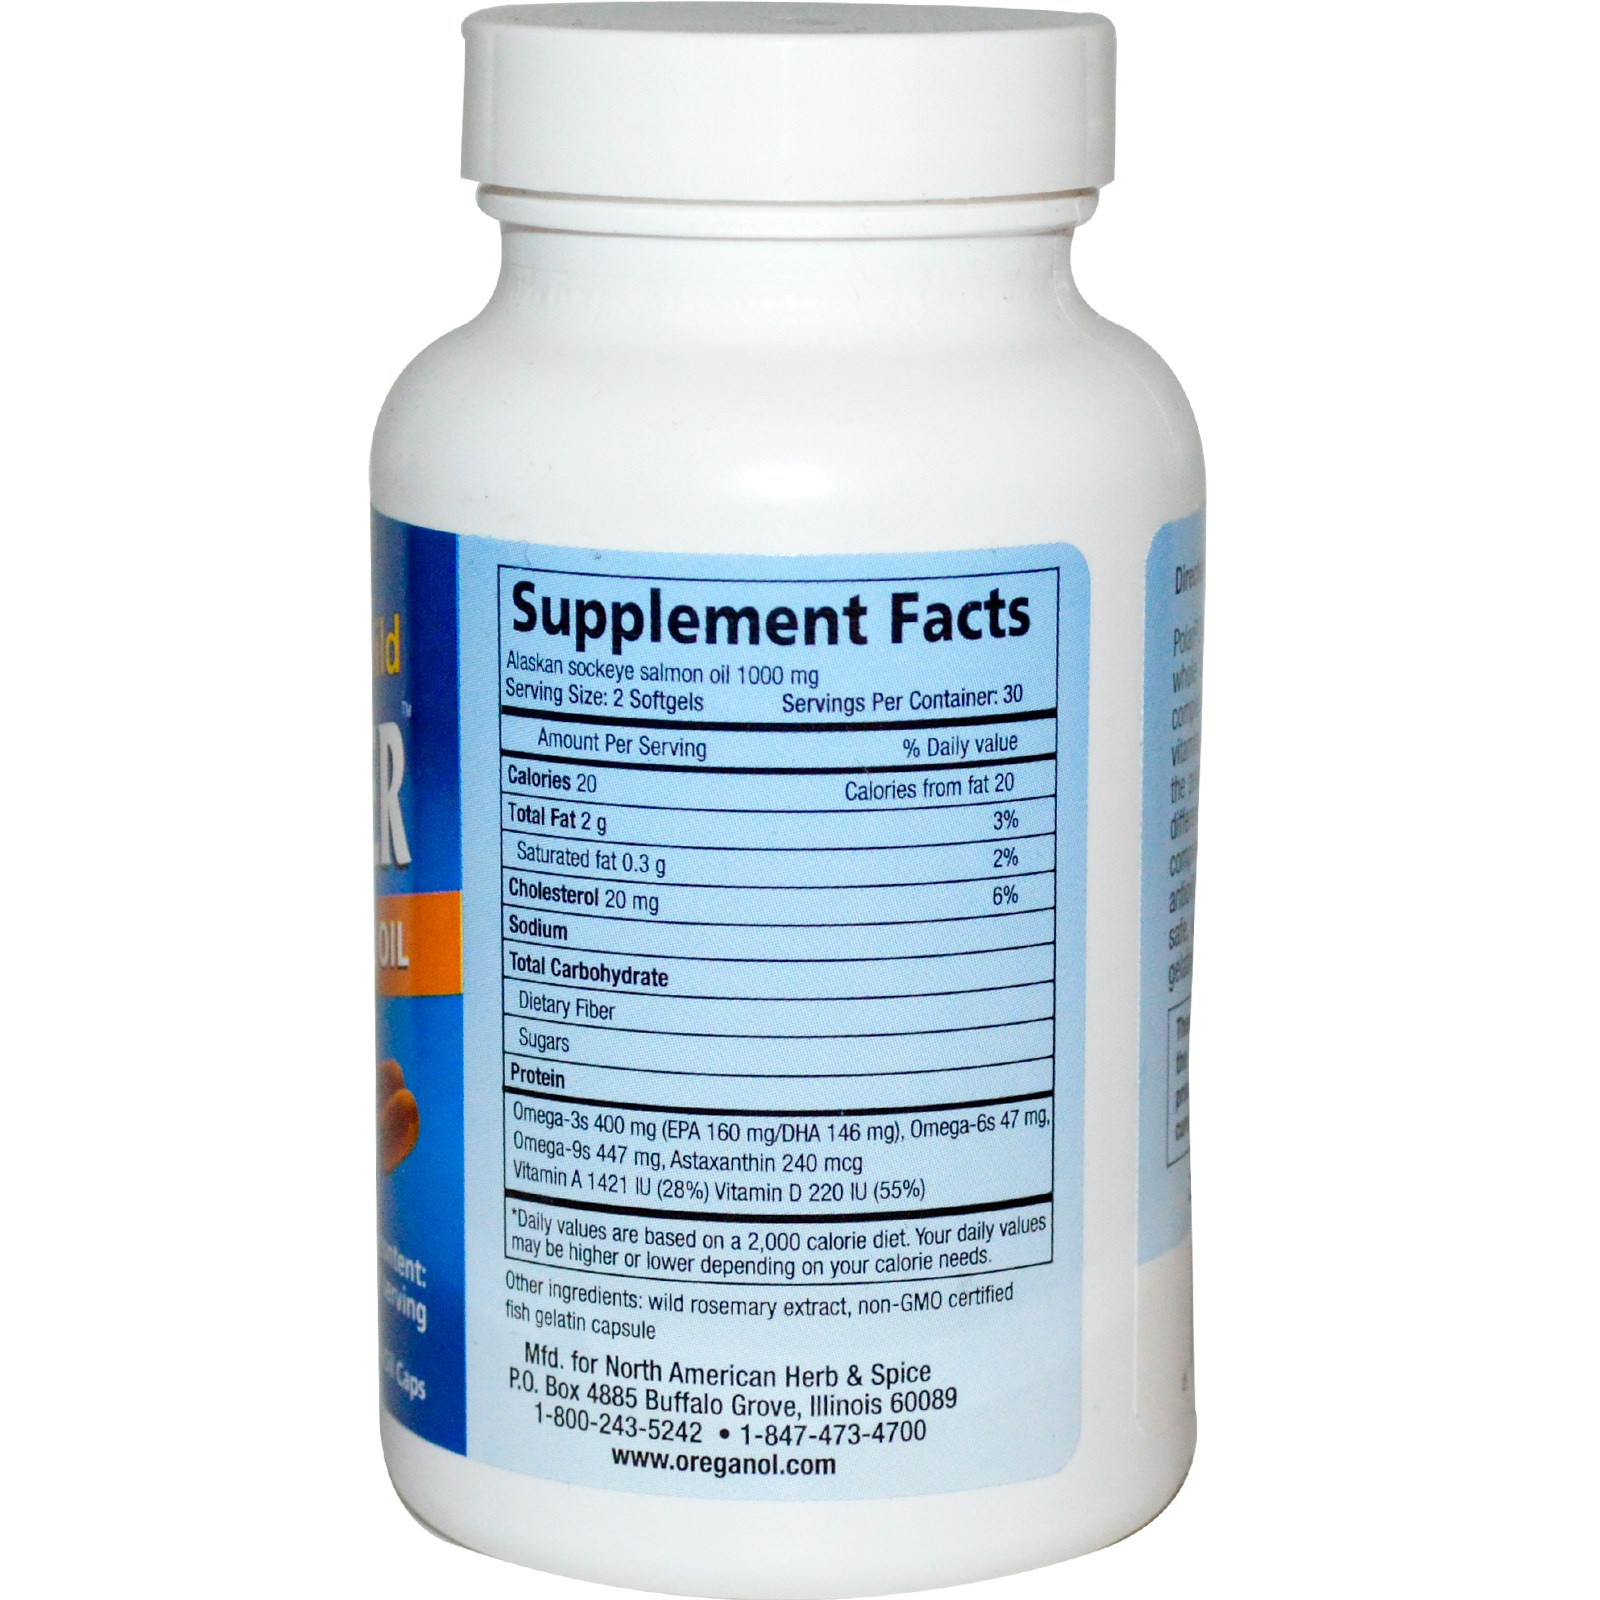 NAHS PolarPOWER Supplement facts